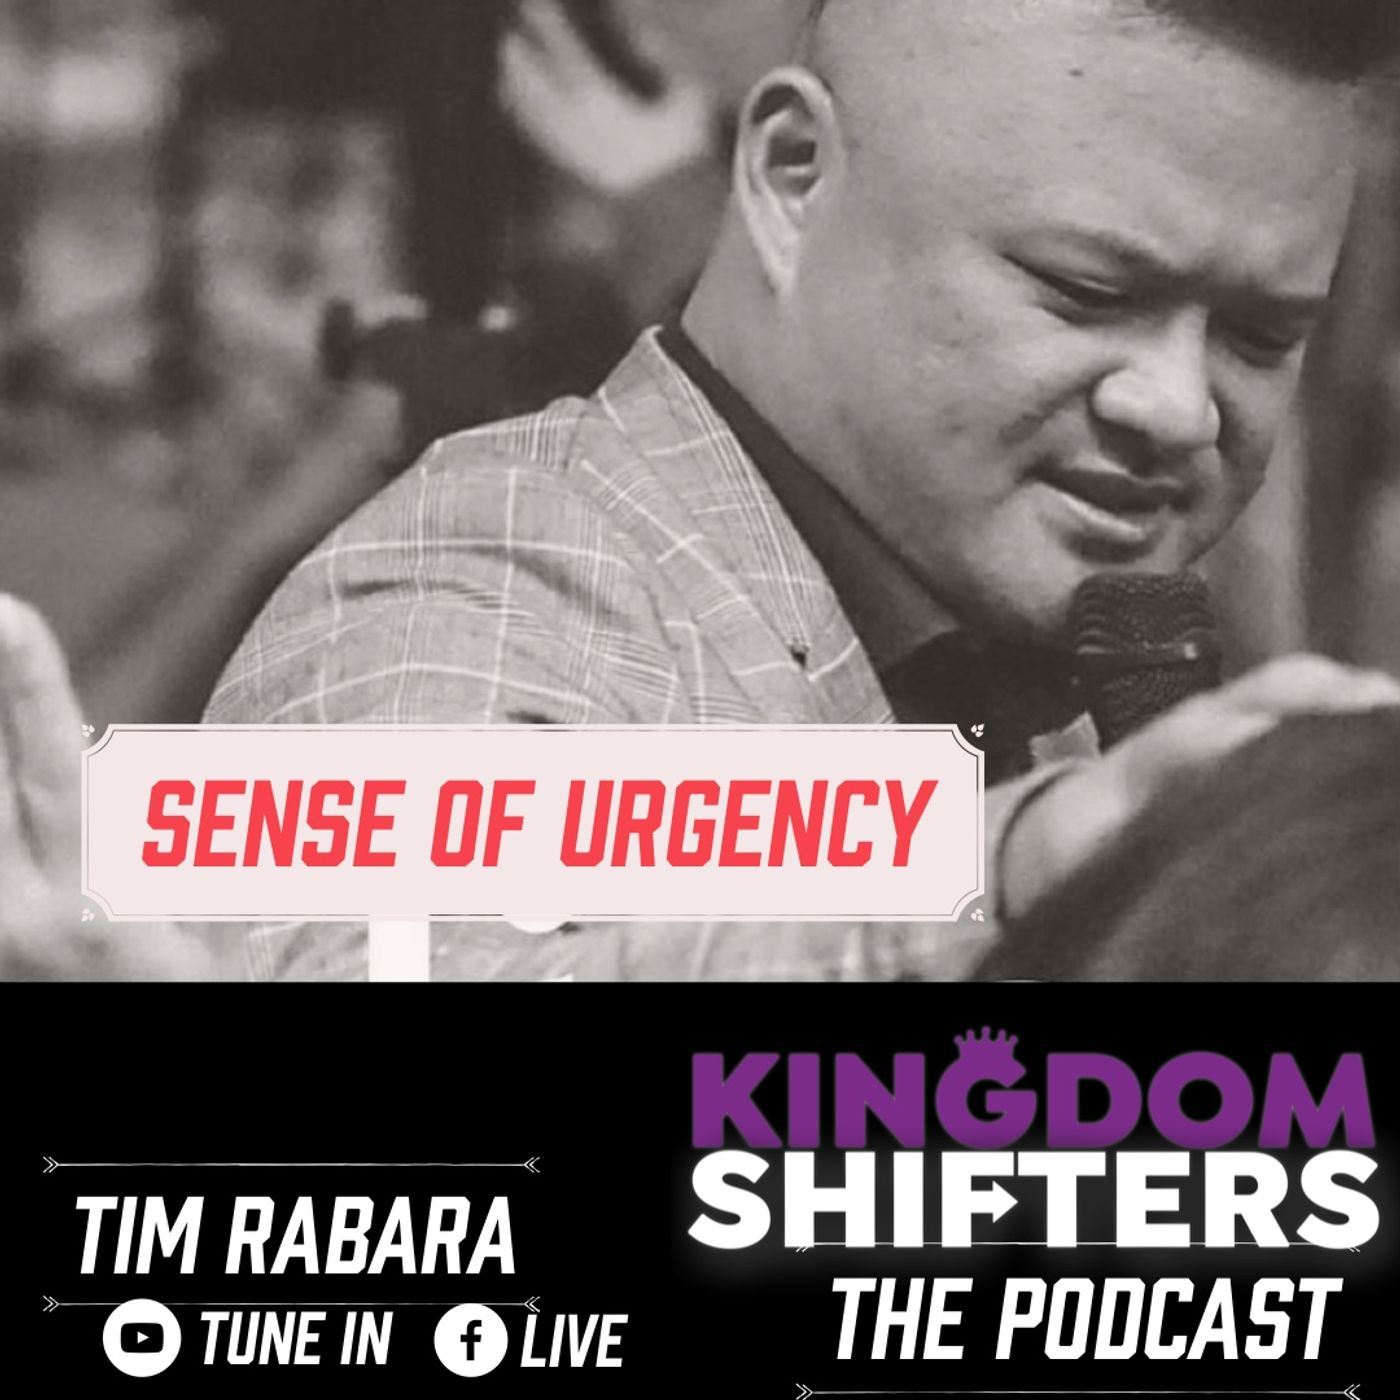 Kingdom Shifters The Podcast Evangelist Tim Rabara - The Rapture is the Next Event